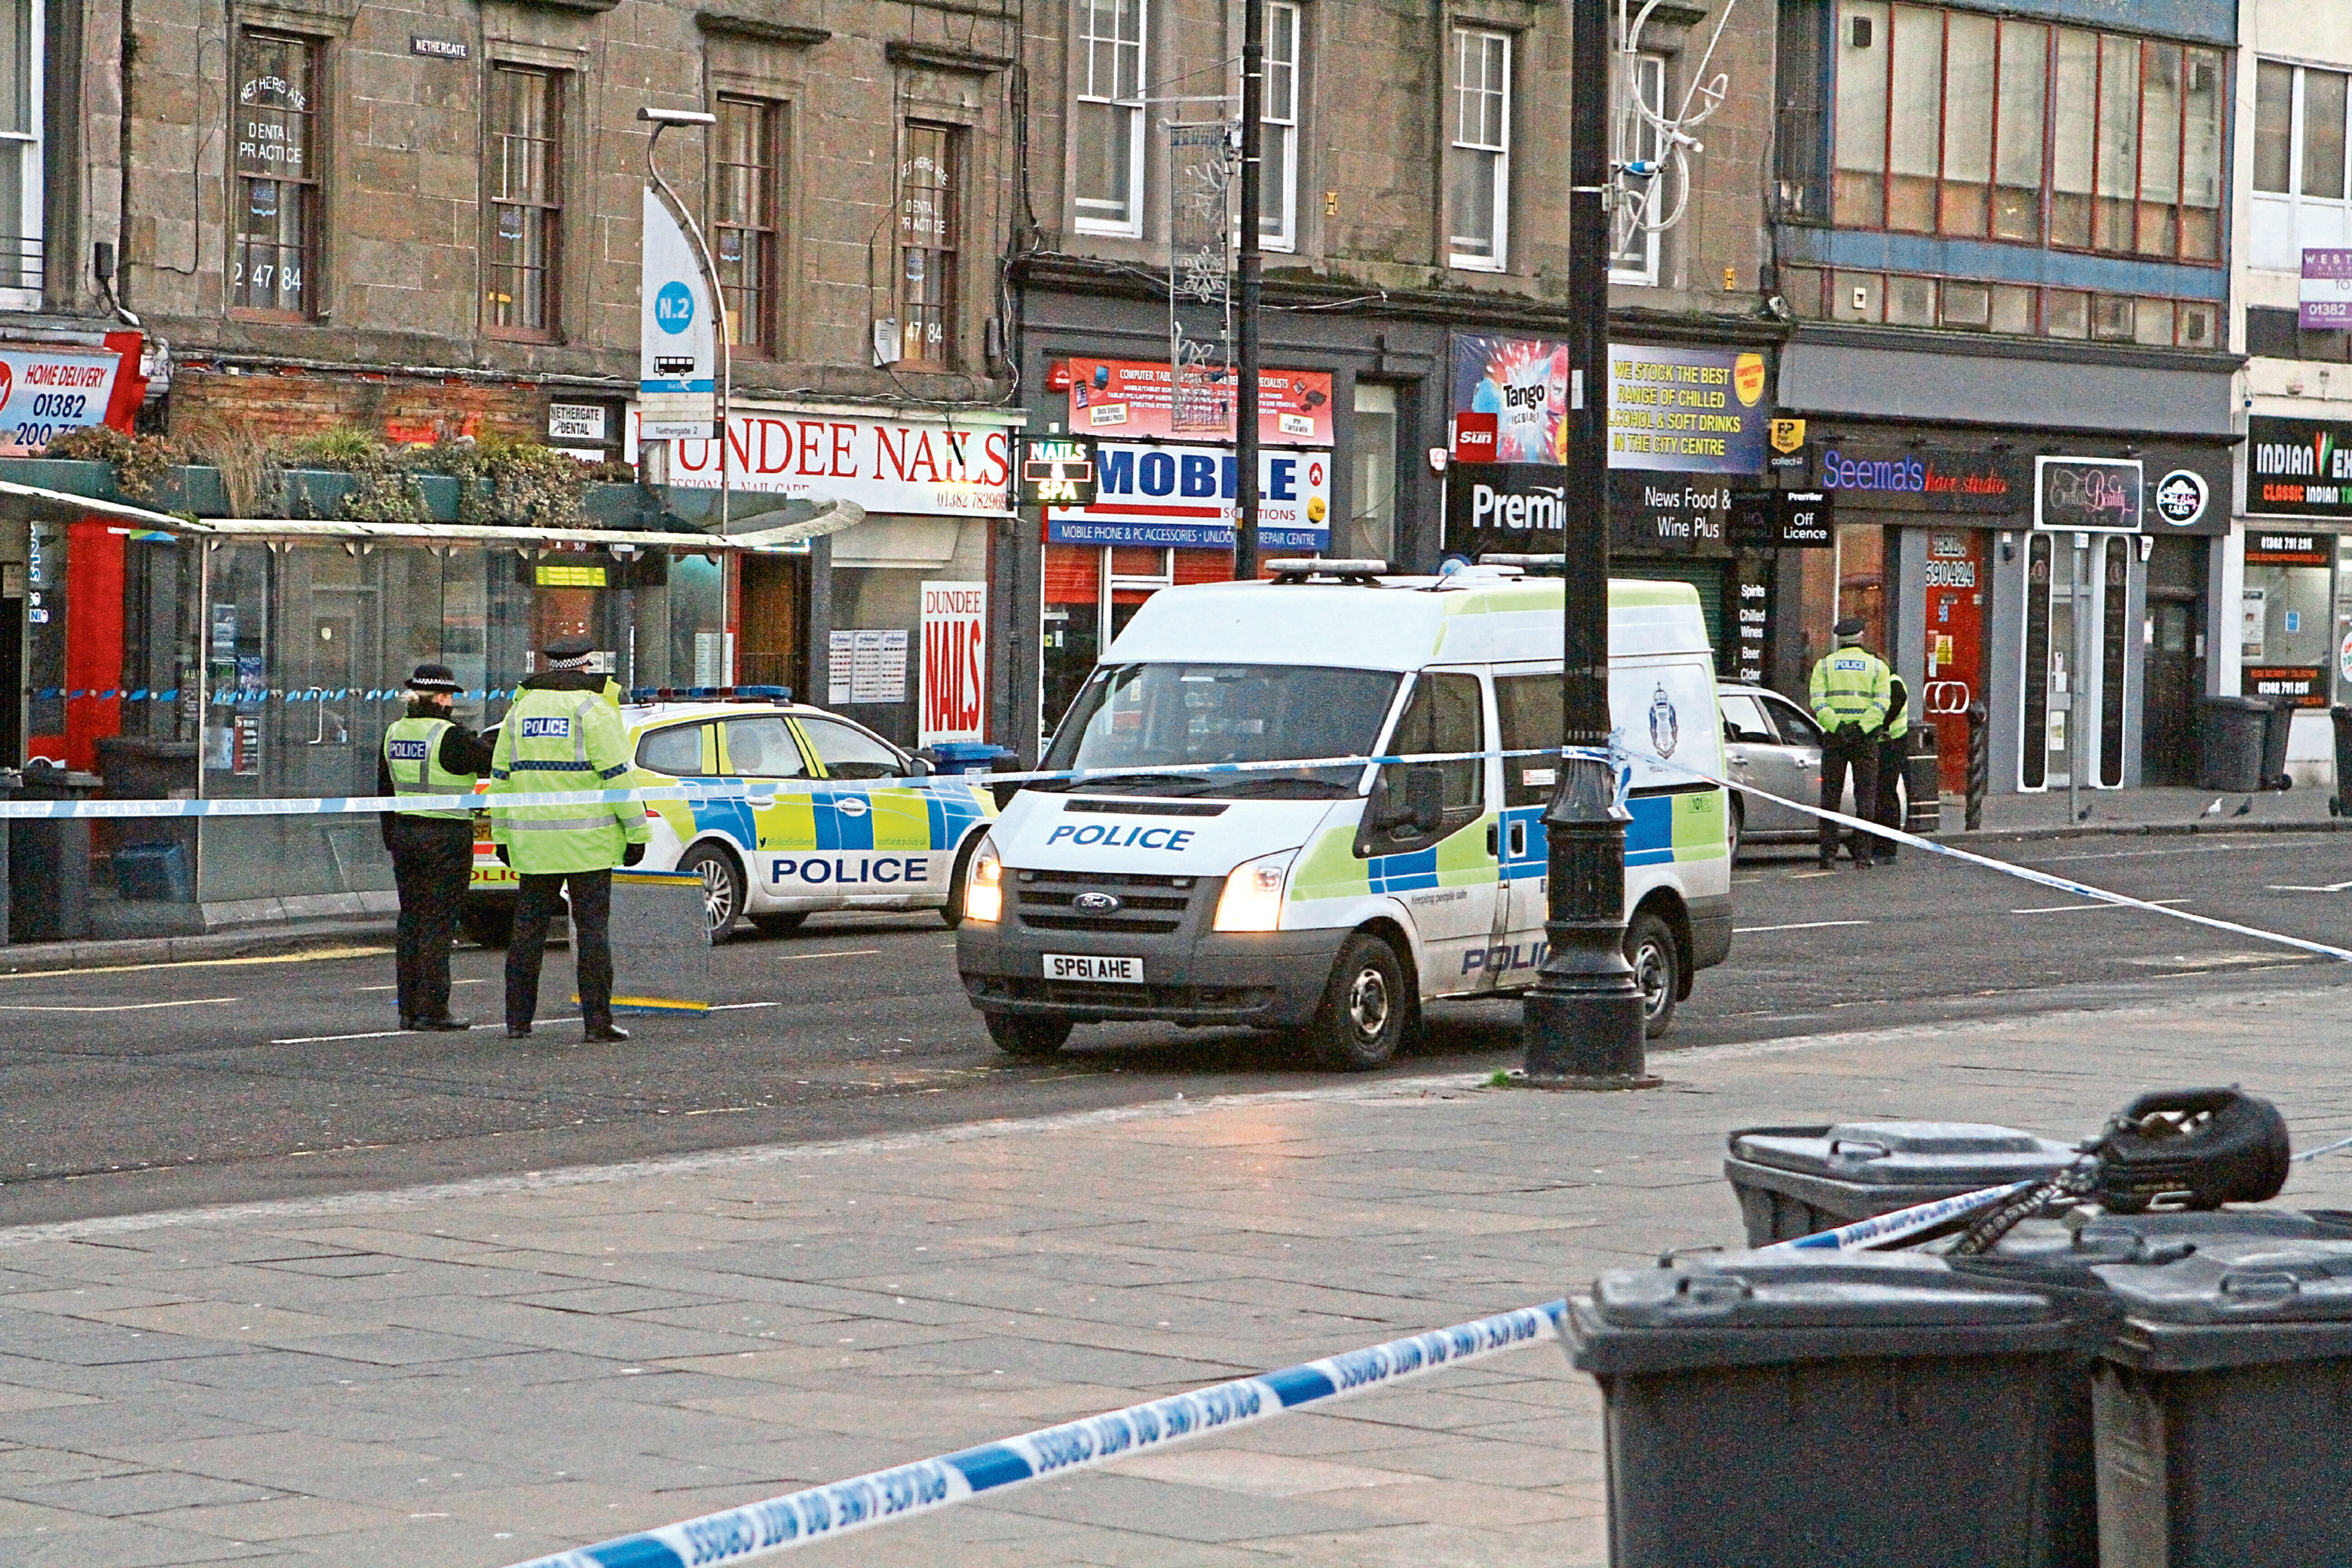 Police activity on the Nethergate in Dundee.